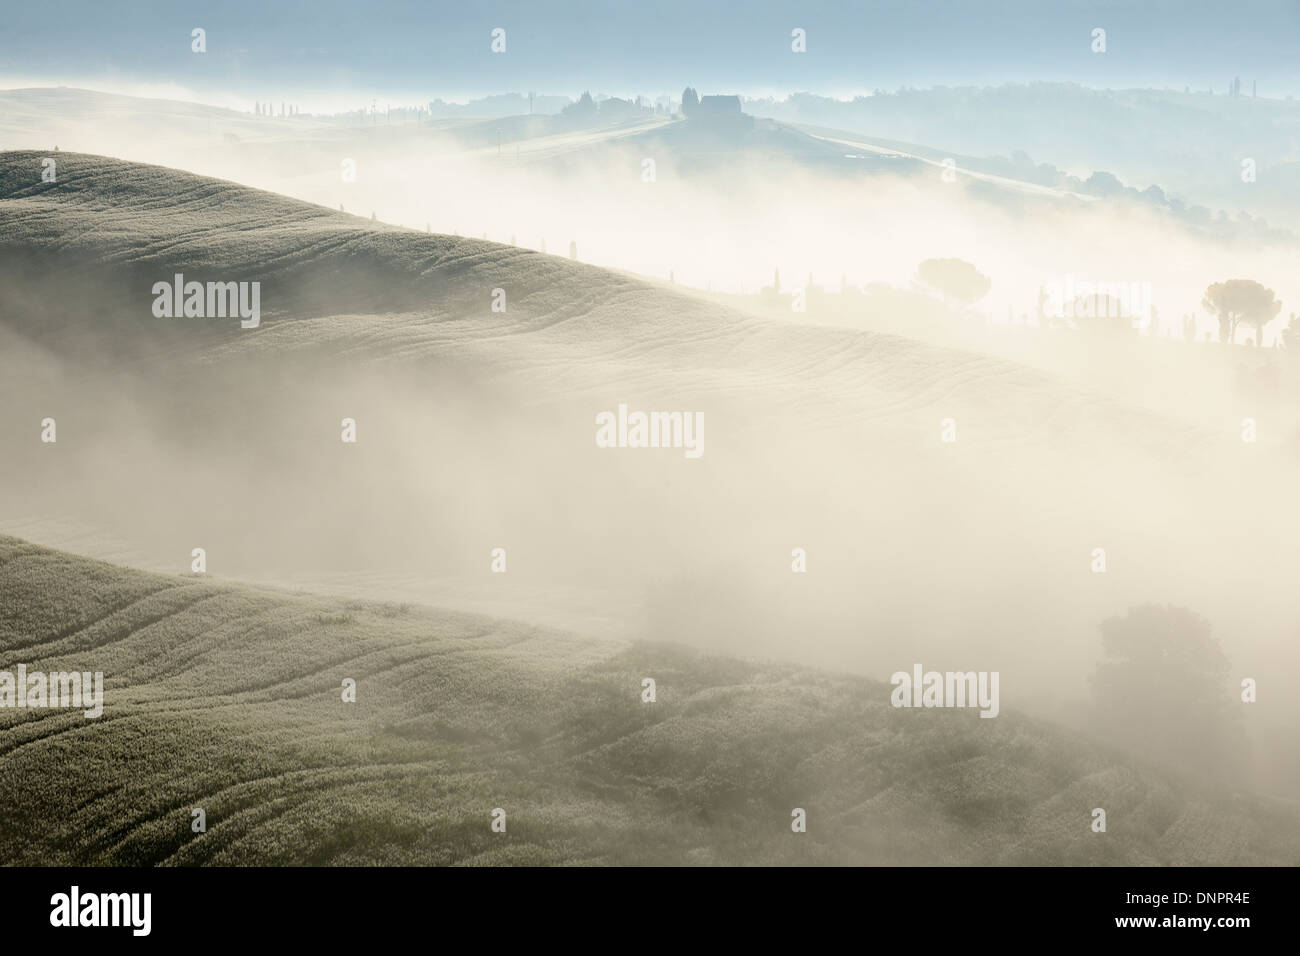 Landscape in morning with fog, near San Quirico d'Orcia, Val d'Orcia, Orcia Valley, Siena District, Tuscany, Italy Stock Photo